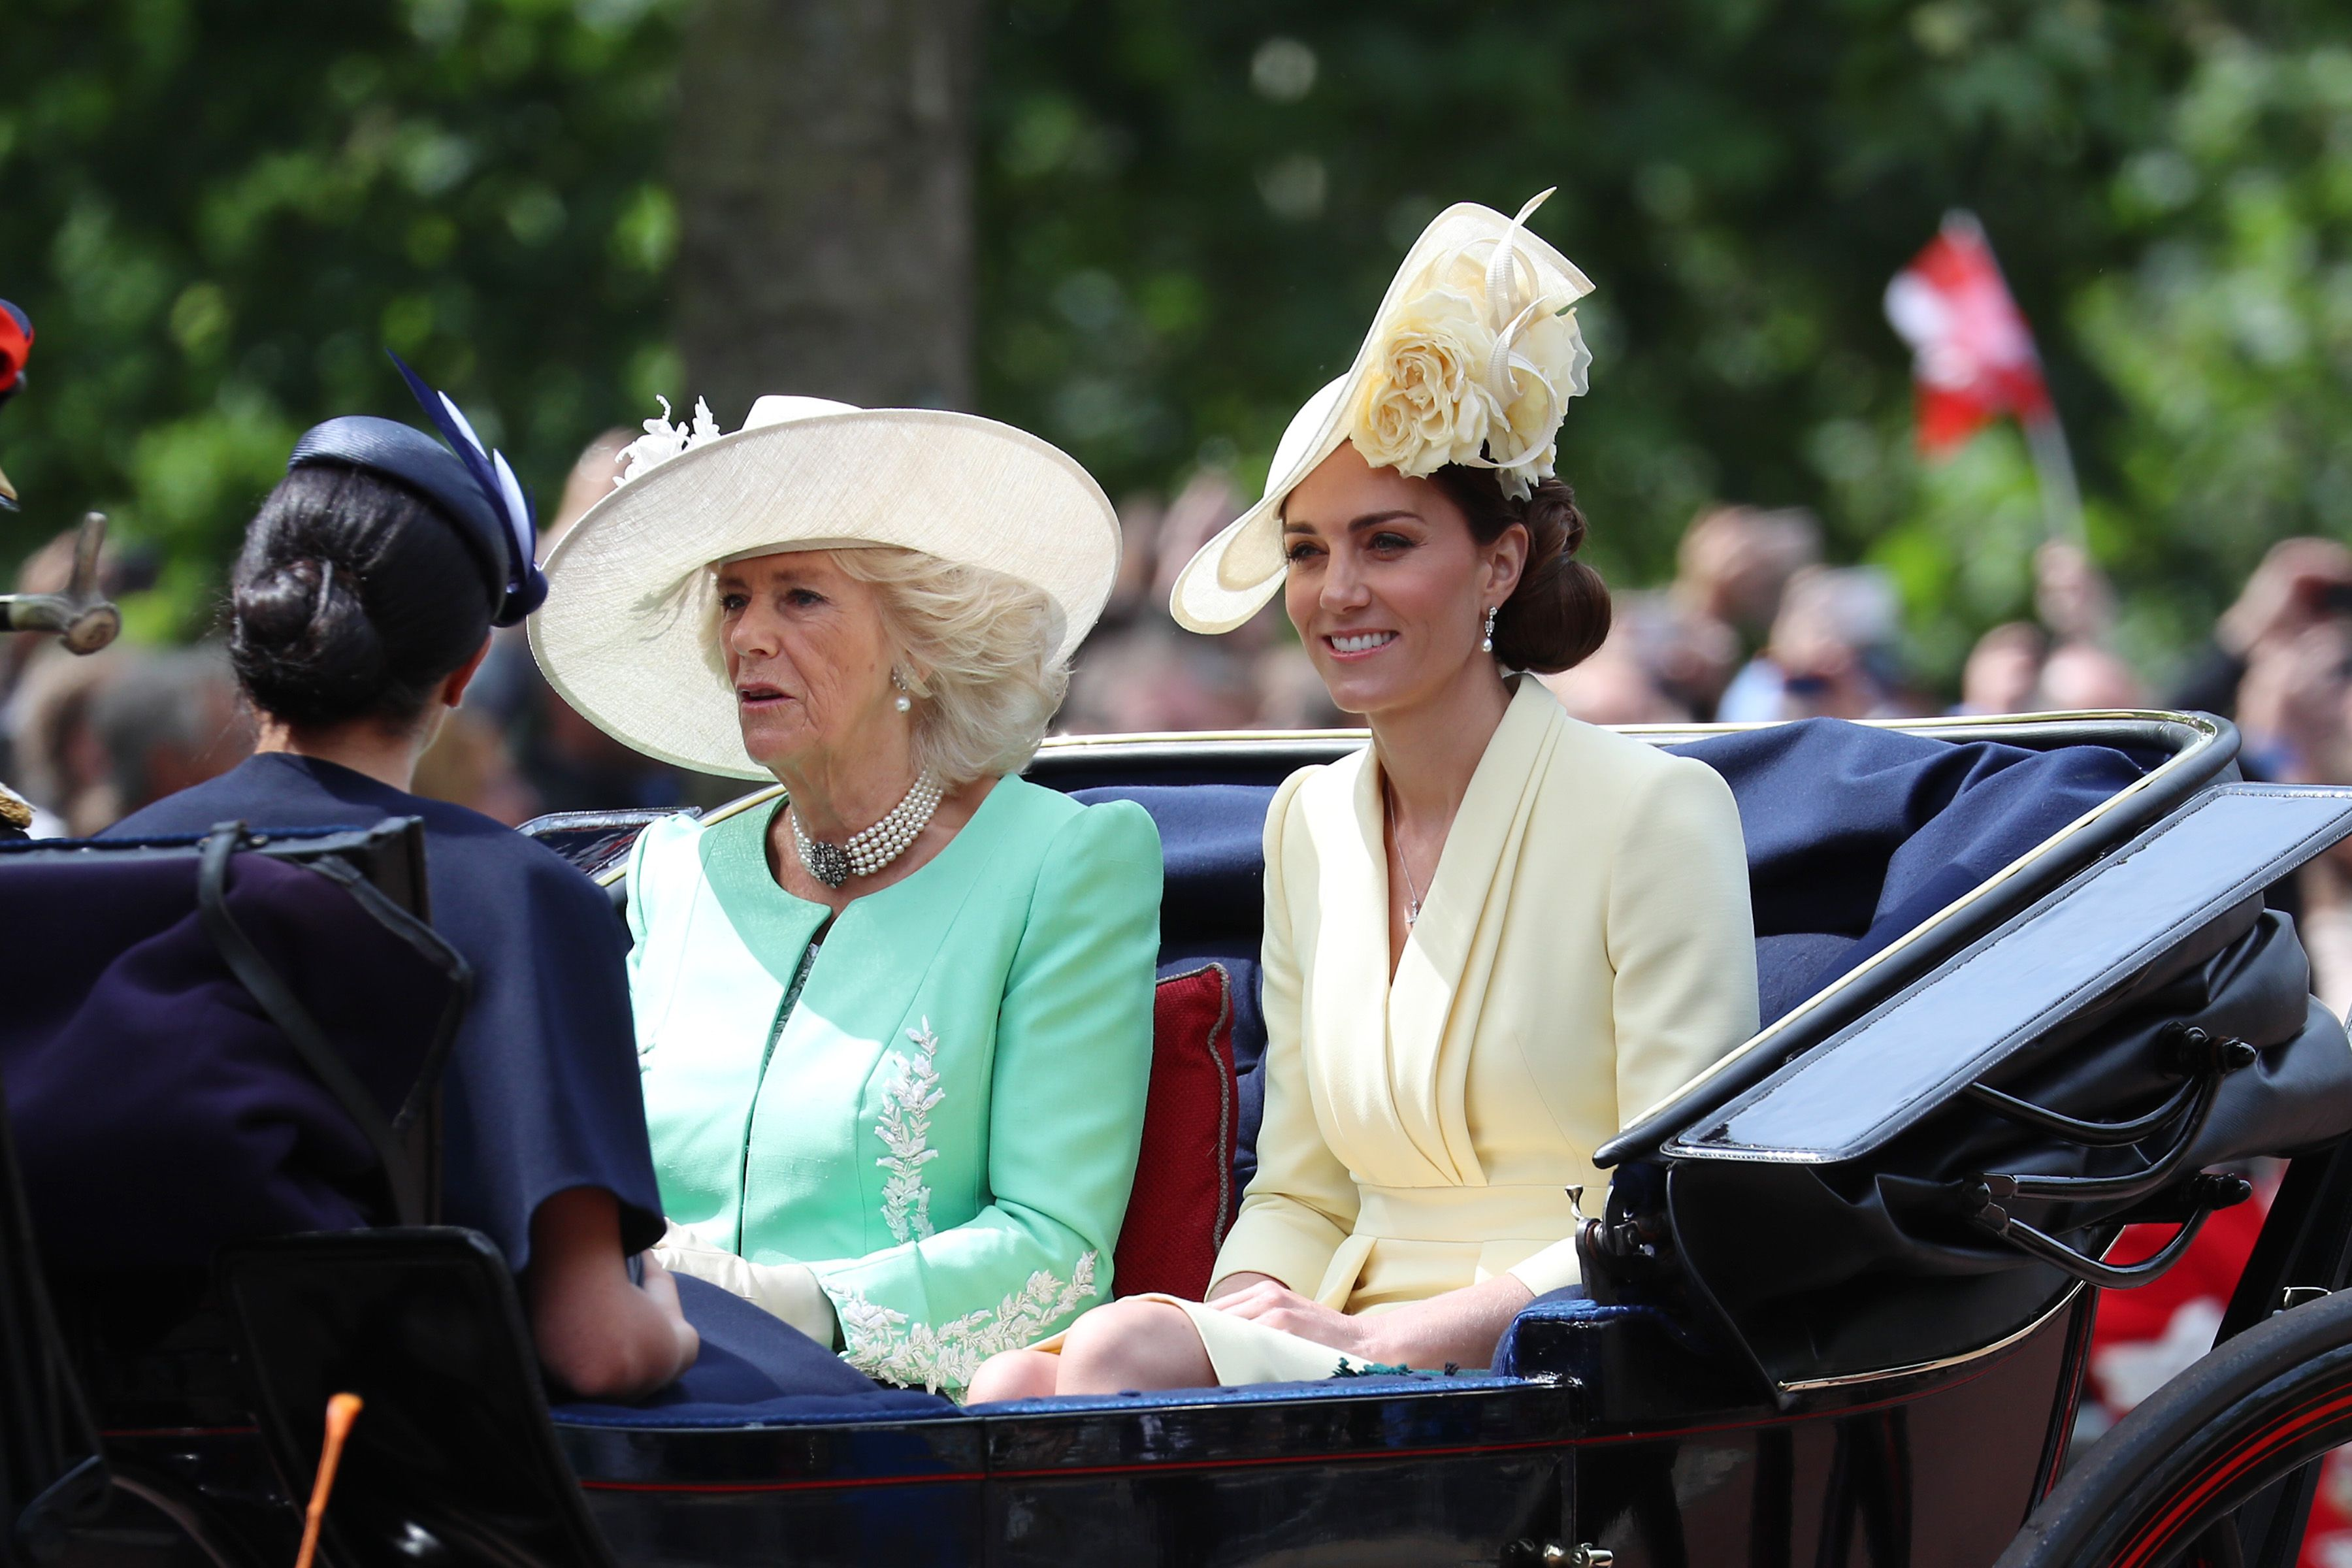 Kate Middleton arrives at Trooping the Colour 2019 in yellow